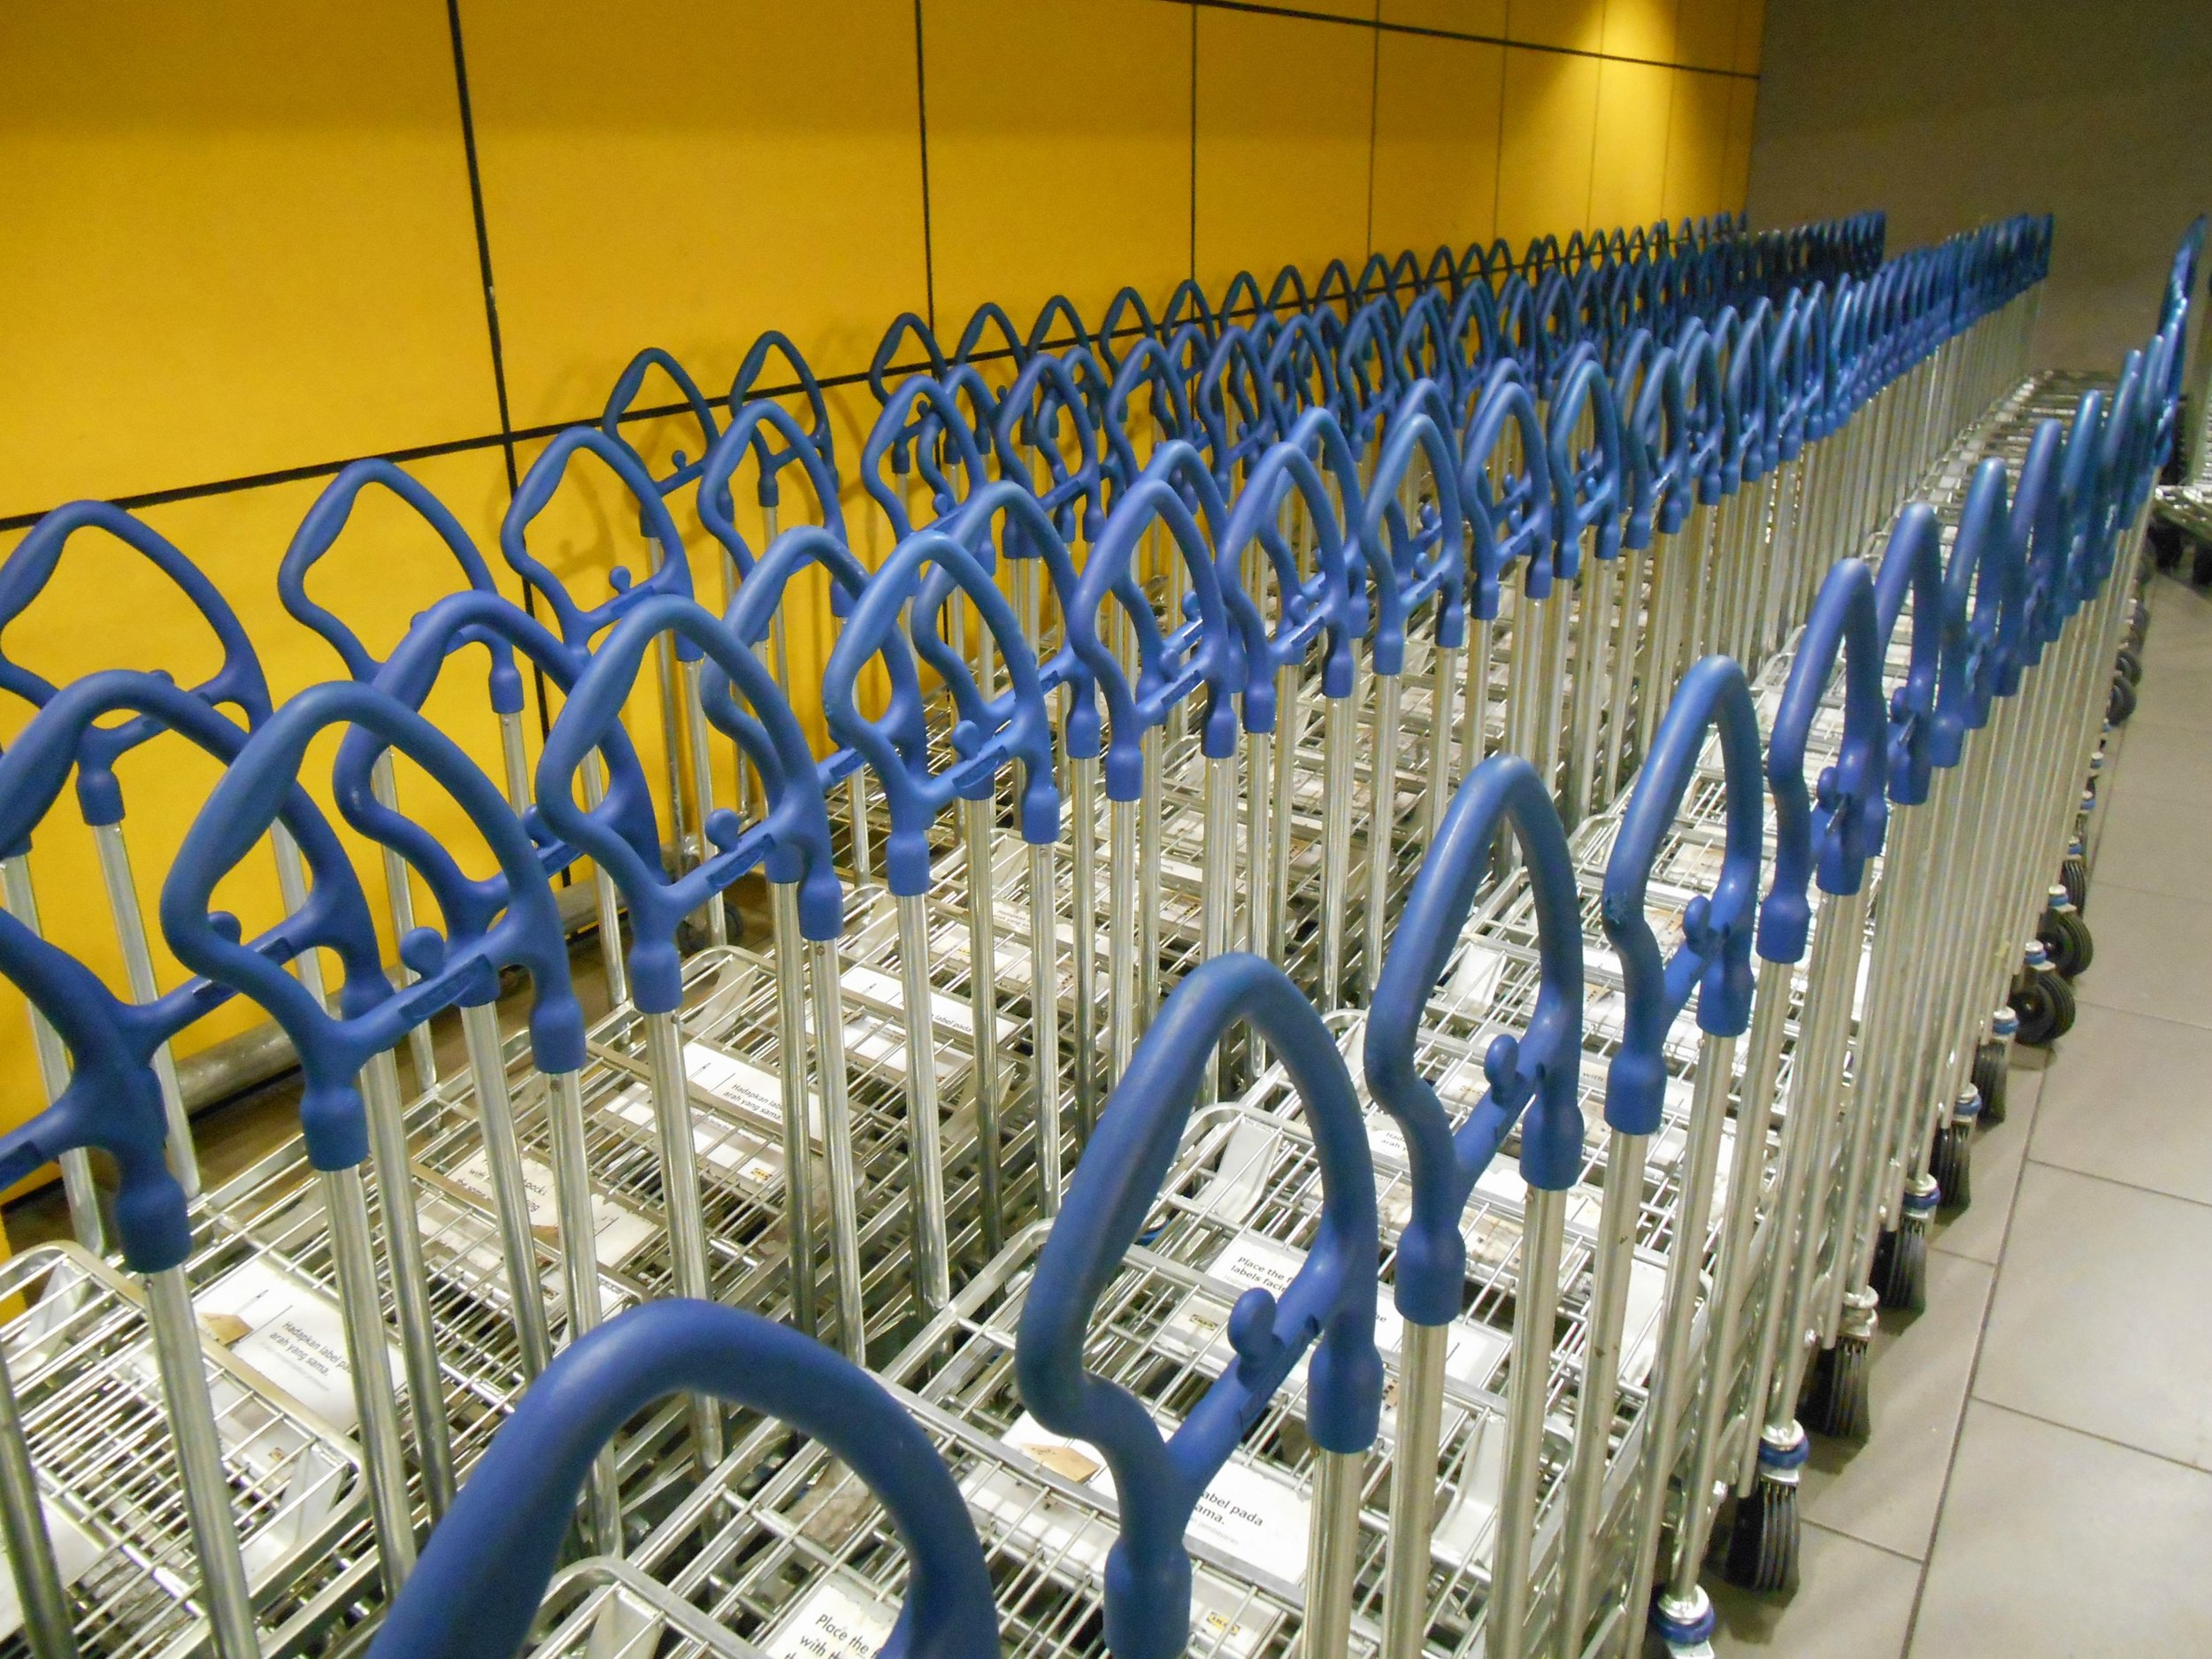 IKEA Shopping Carts.jpg